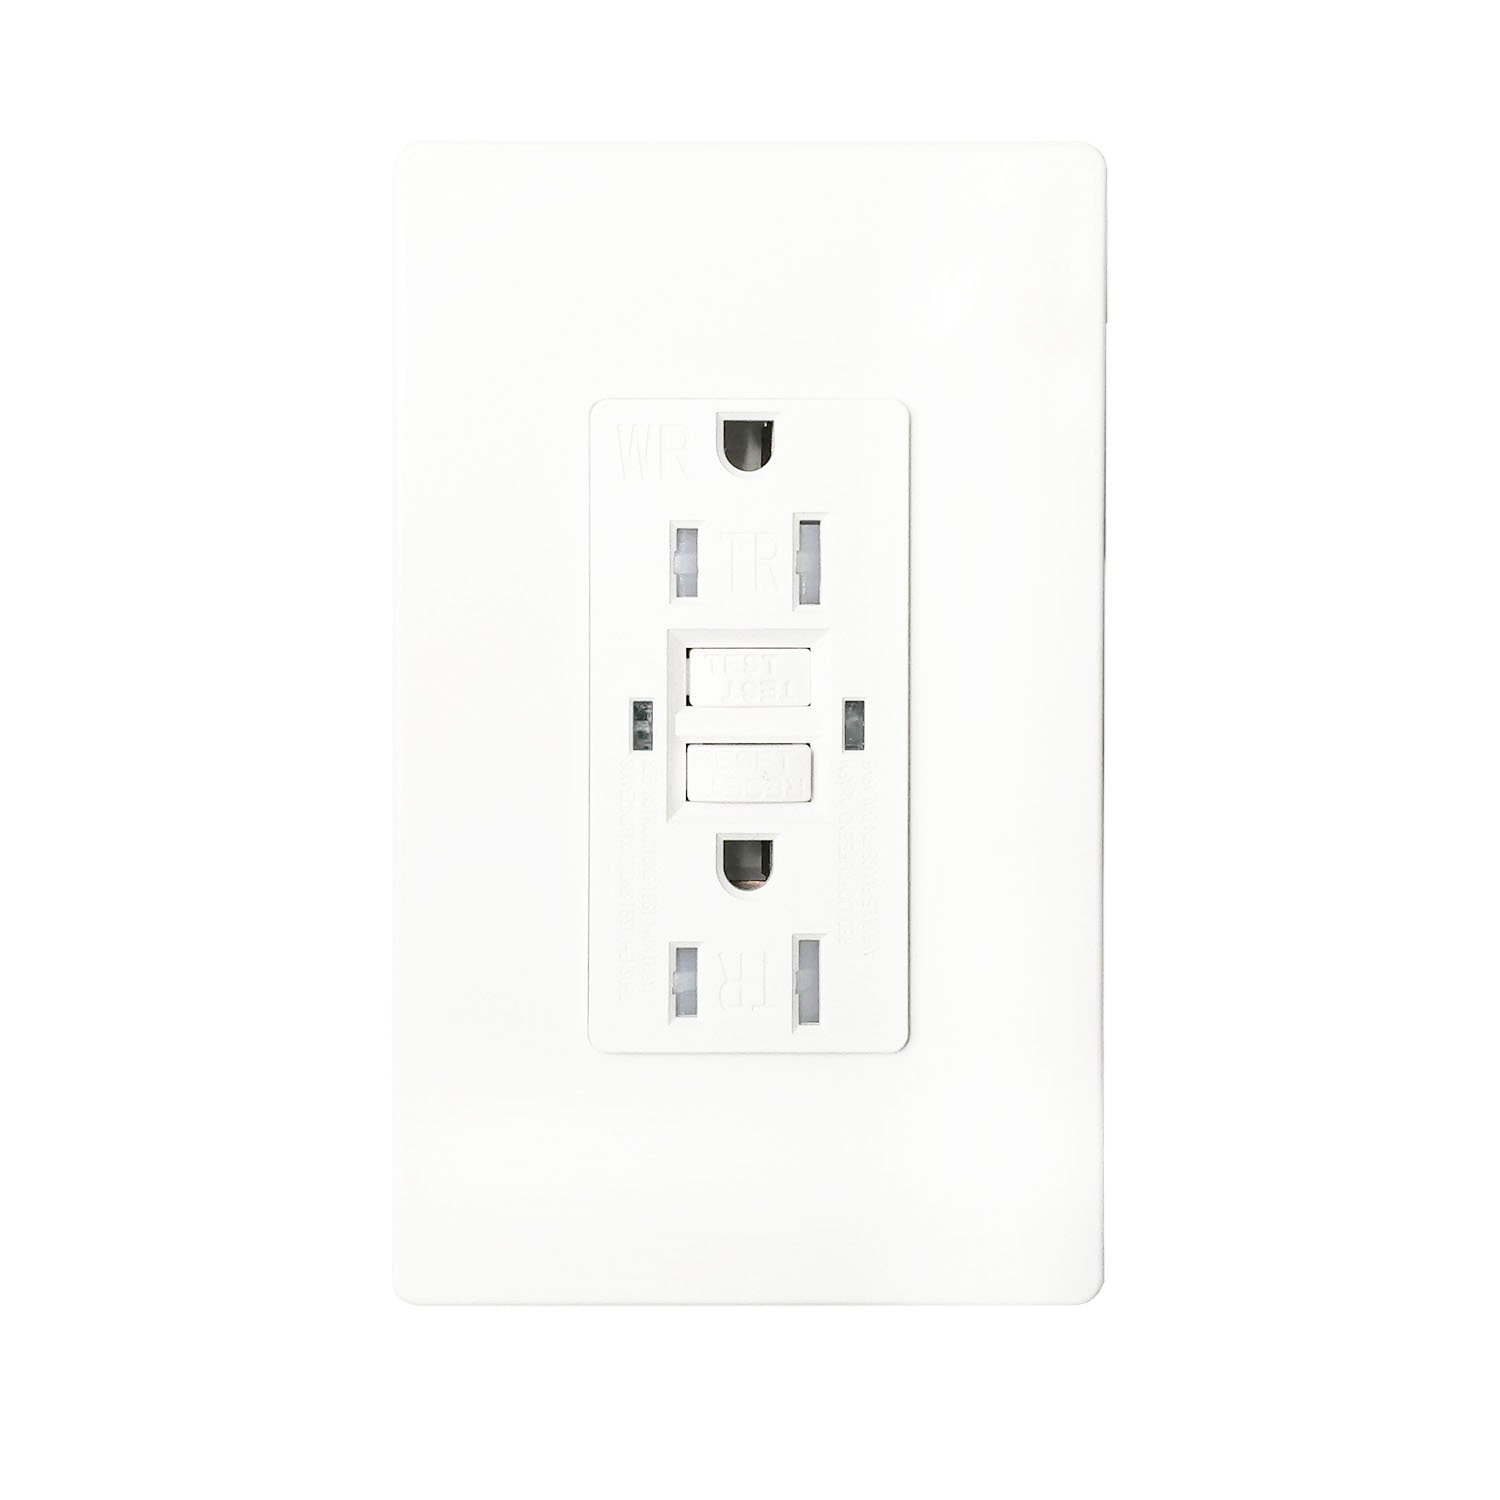 GFCI 15A TR WR Wall Outlet - LASOCKETS 15 Amp 125 Volt Tamper Resistant Socket For Standard Wall Receptacle Outlet, Residential Grade, Grounding, with Wall Plates, UL Listed (1 Pack)